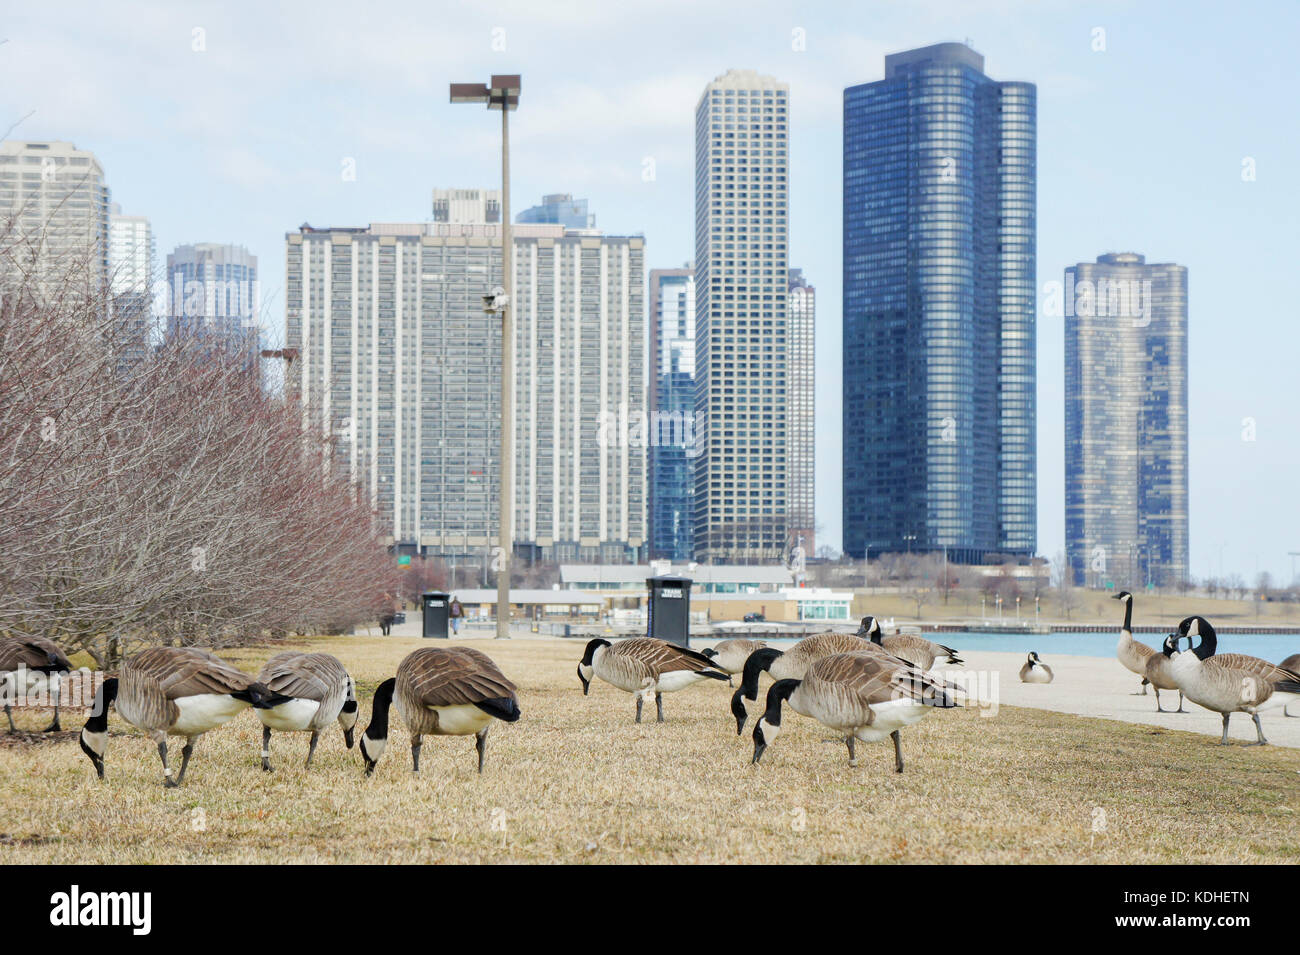 Many Canada geese with Chicago skyline at Millennium Park, Chicago, Illinois, United States - Stock Image